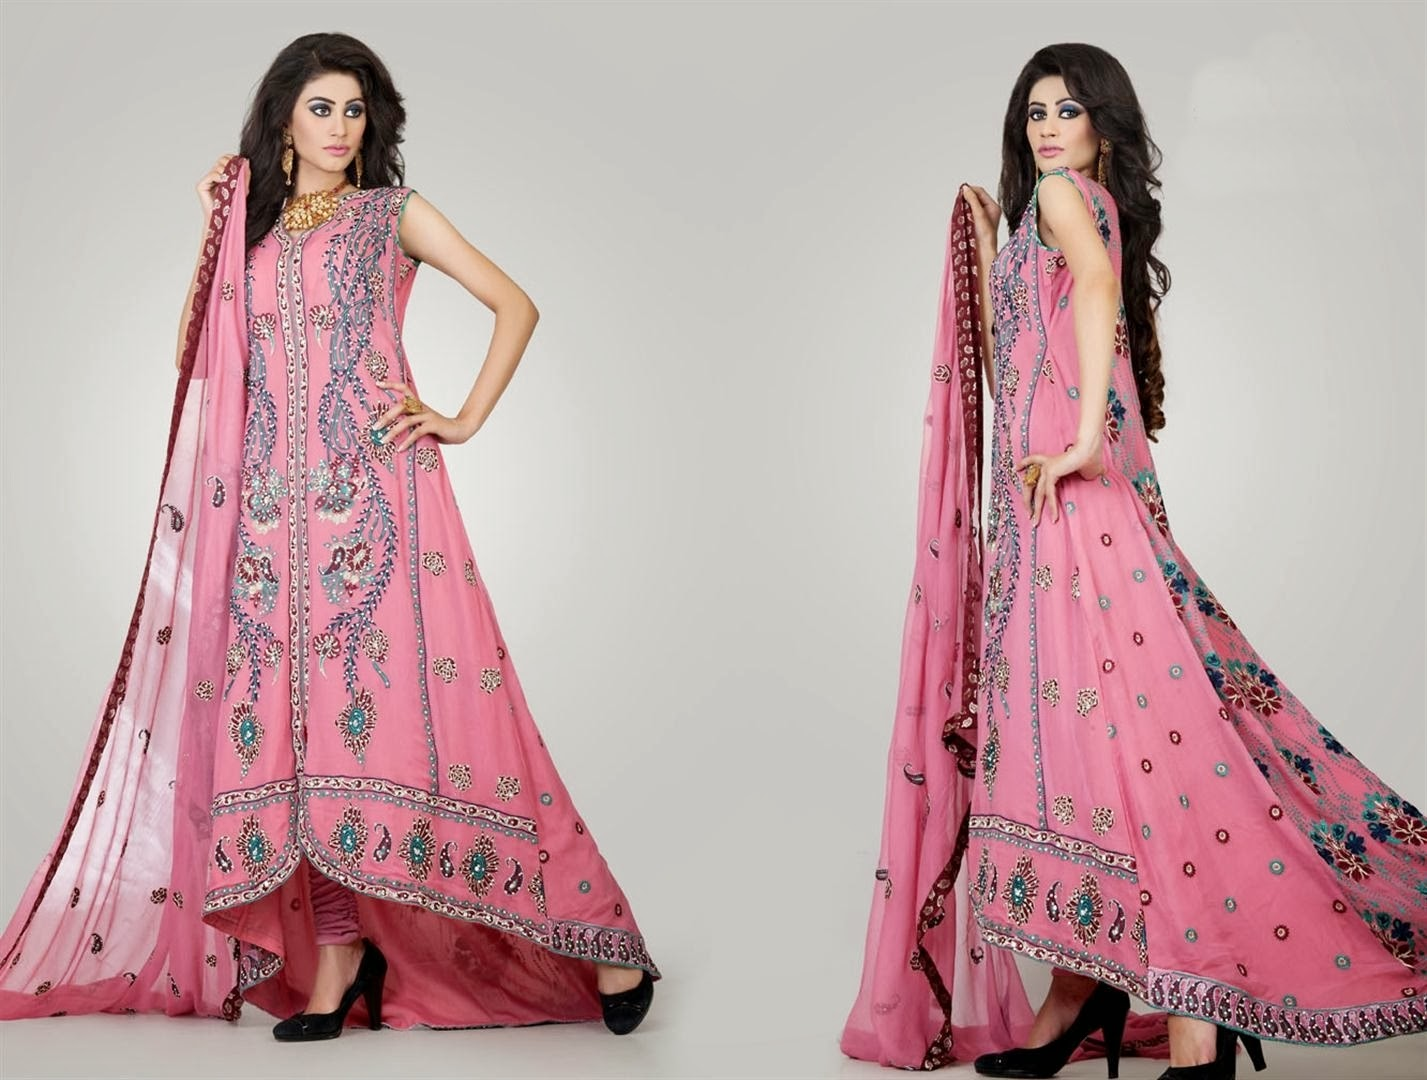 Make Your Eid Colorful With A Beautiful Outfit!